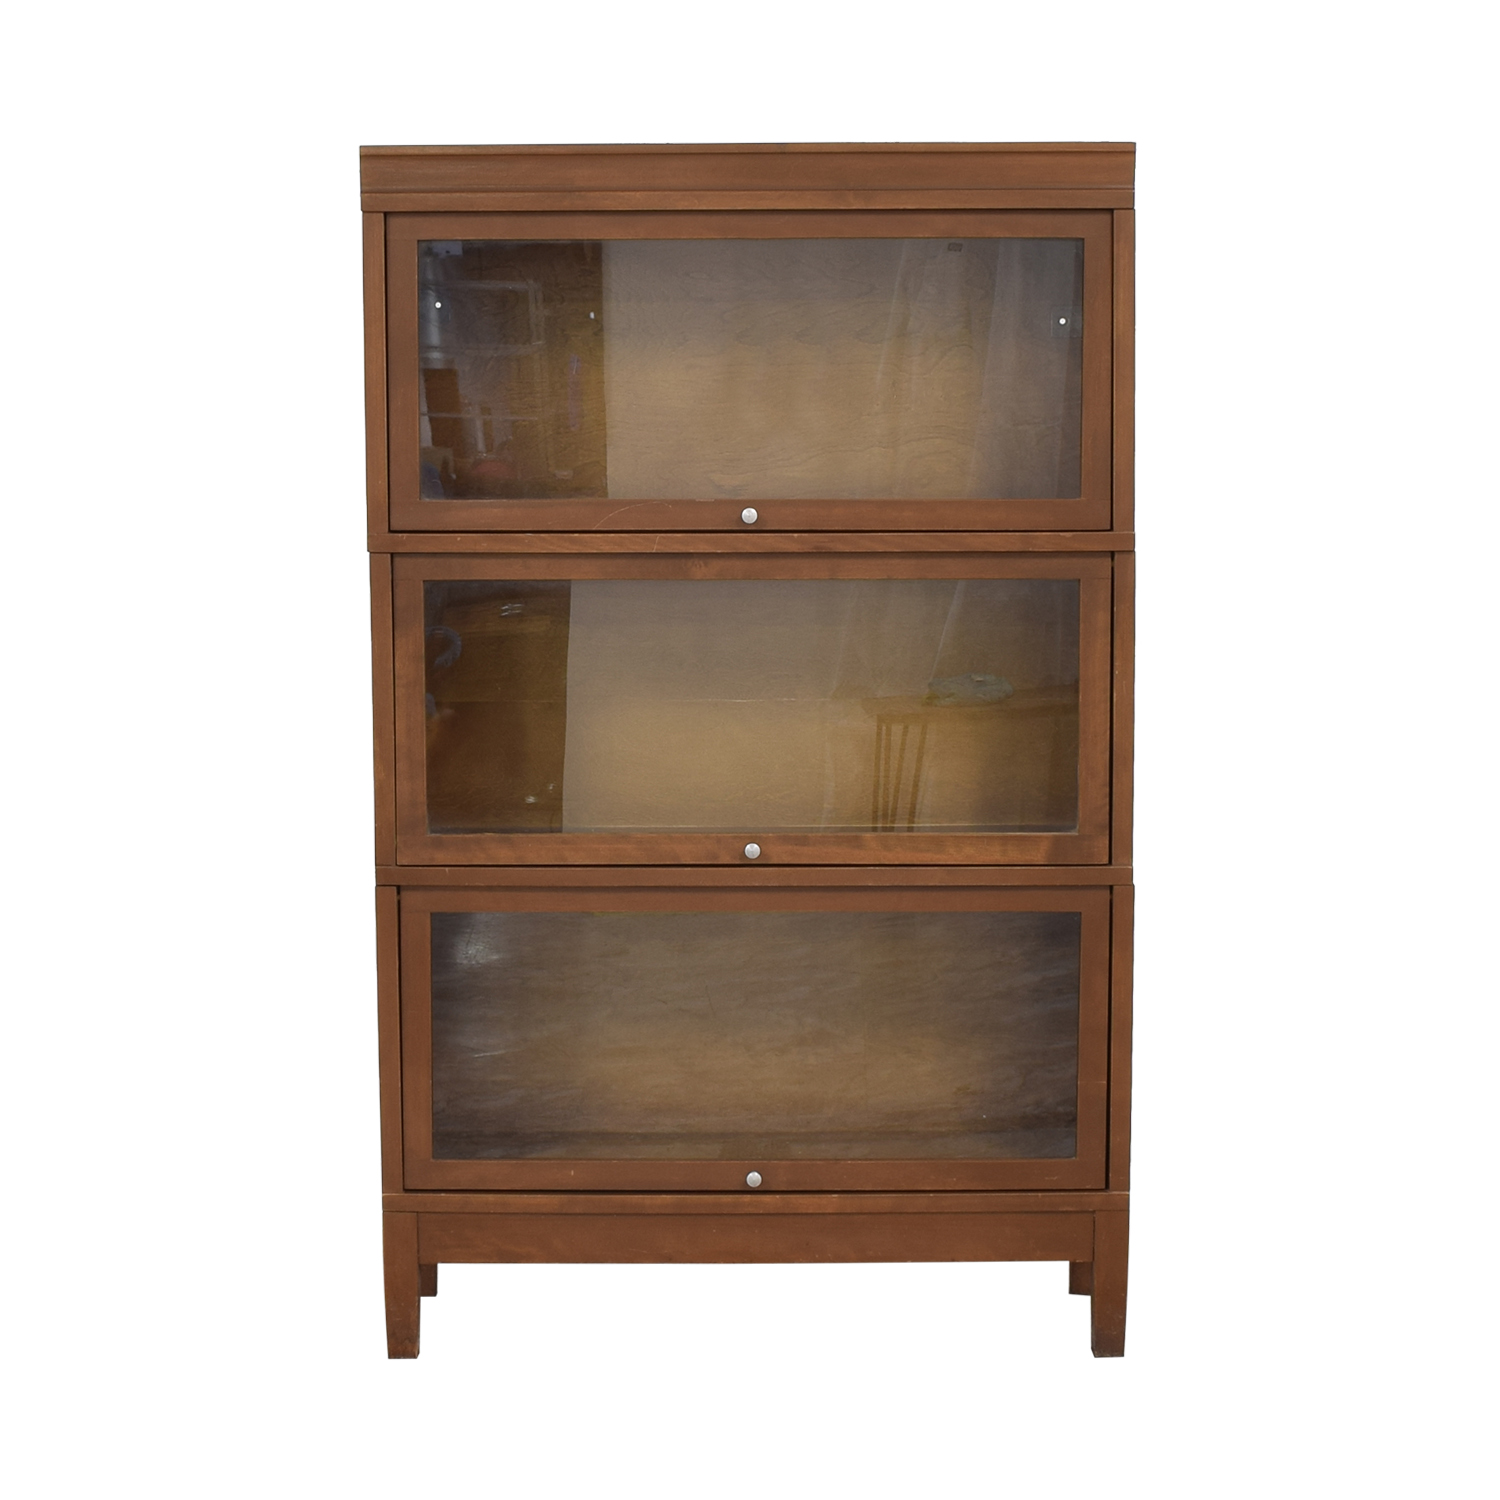 Hale Hale Sectional Barrister Three Stack Bookcase brown